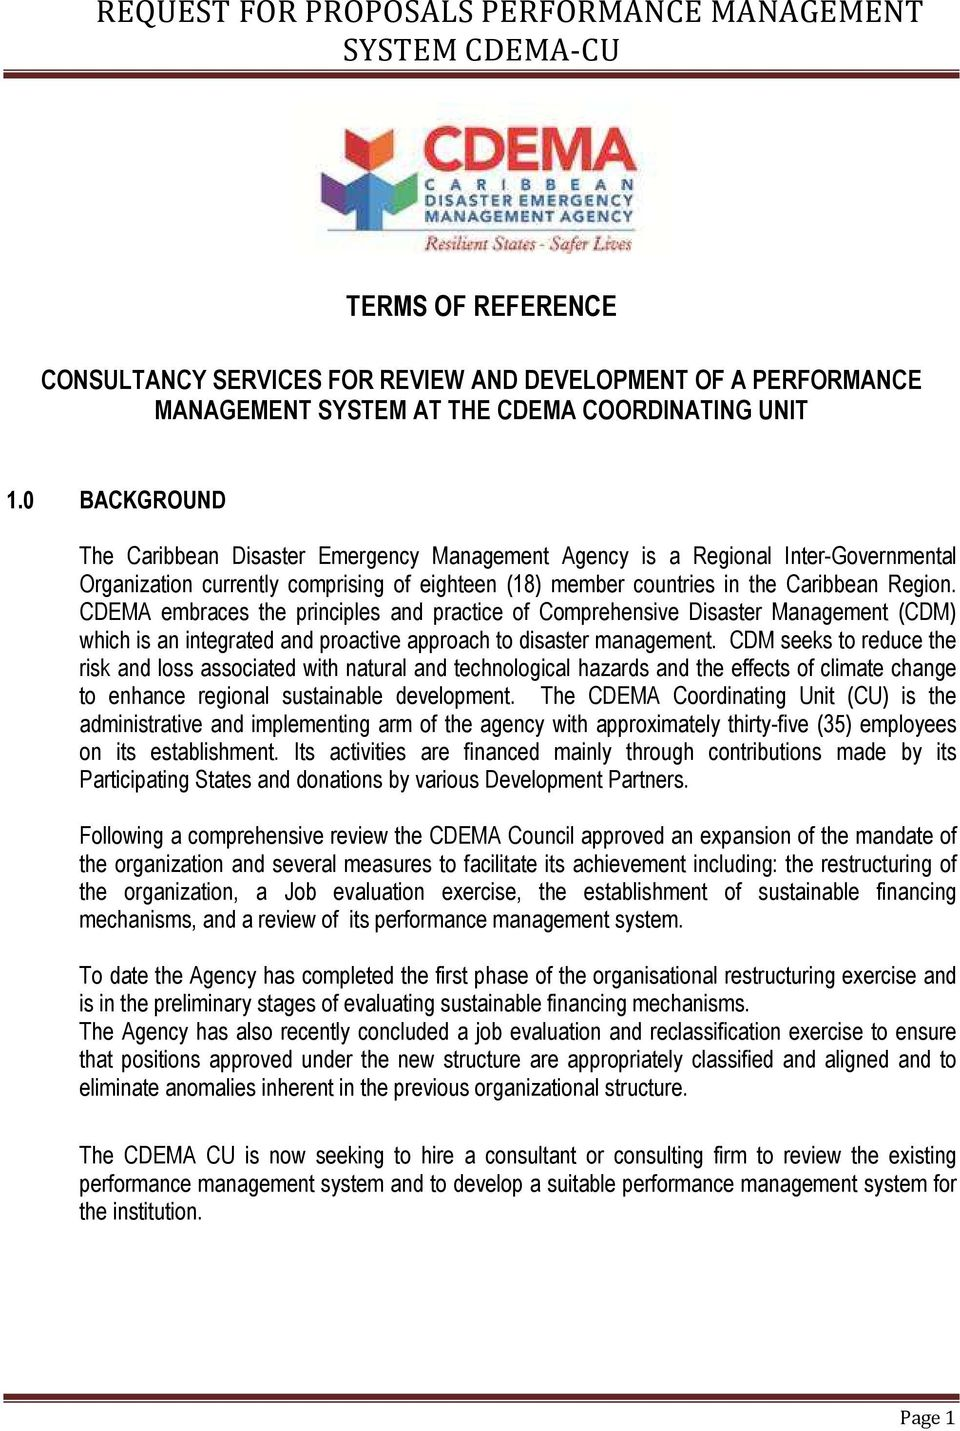 CDEMA embraces the principles and practice of Comprehensive Disaster Management (CDM) which is an integrated and proactive approach to disaster management.